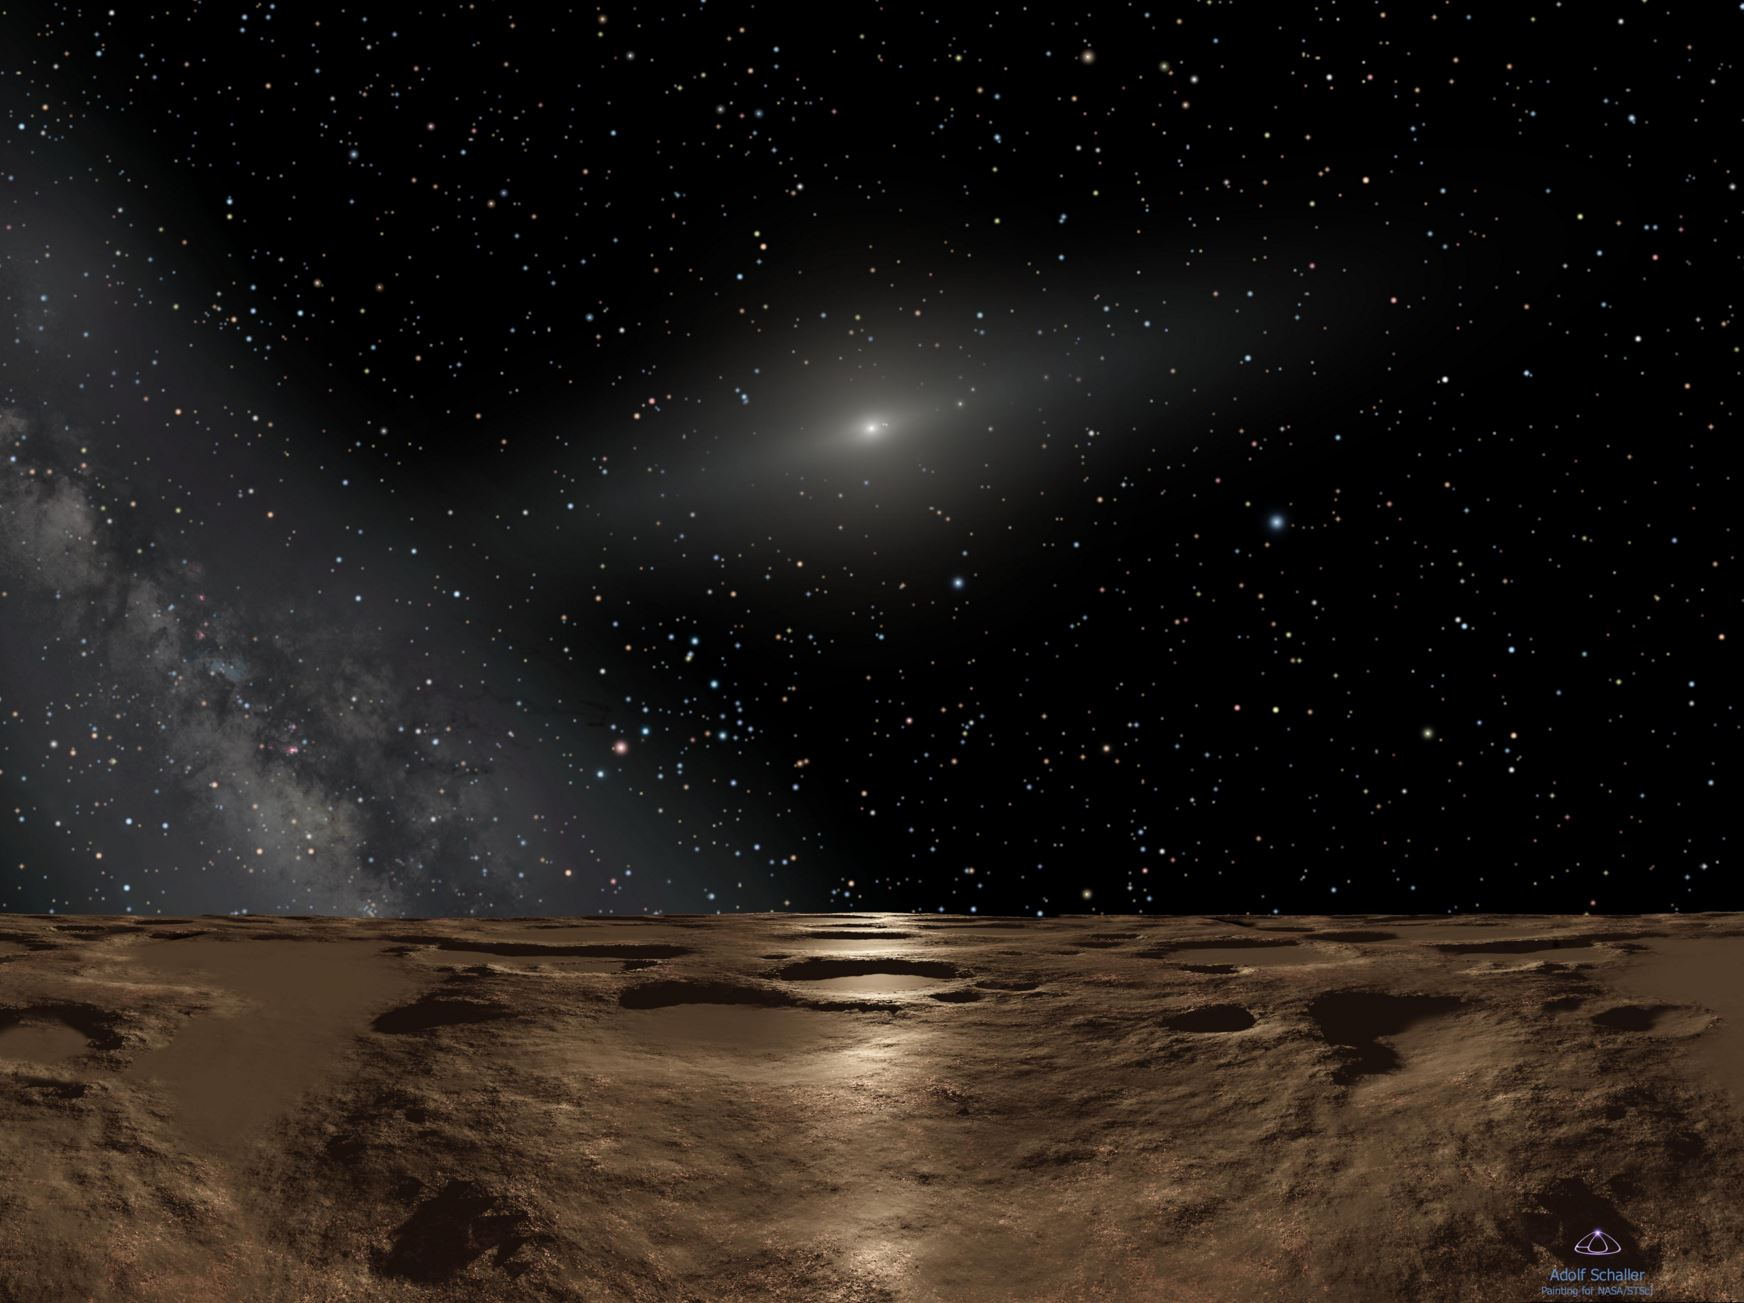 Artist's impression: Looking back 12.9-billion km towards the sun and the inner solar system from Sedna, one of the recently discovered minor planets in the Kuiper belt. - Image Credit:  NASA, ESA and Adolf Schaller